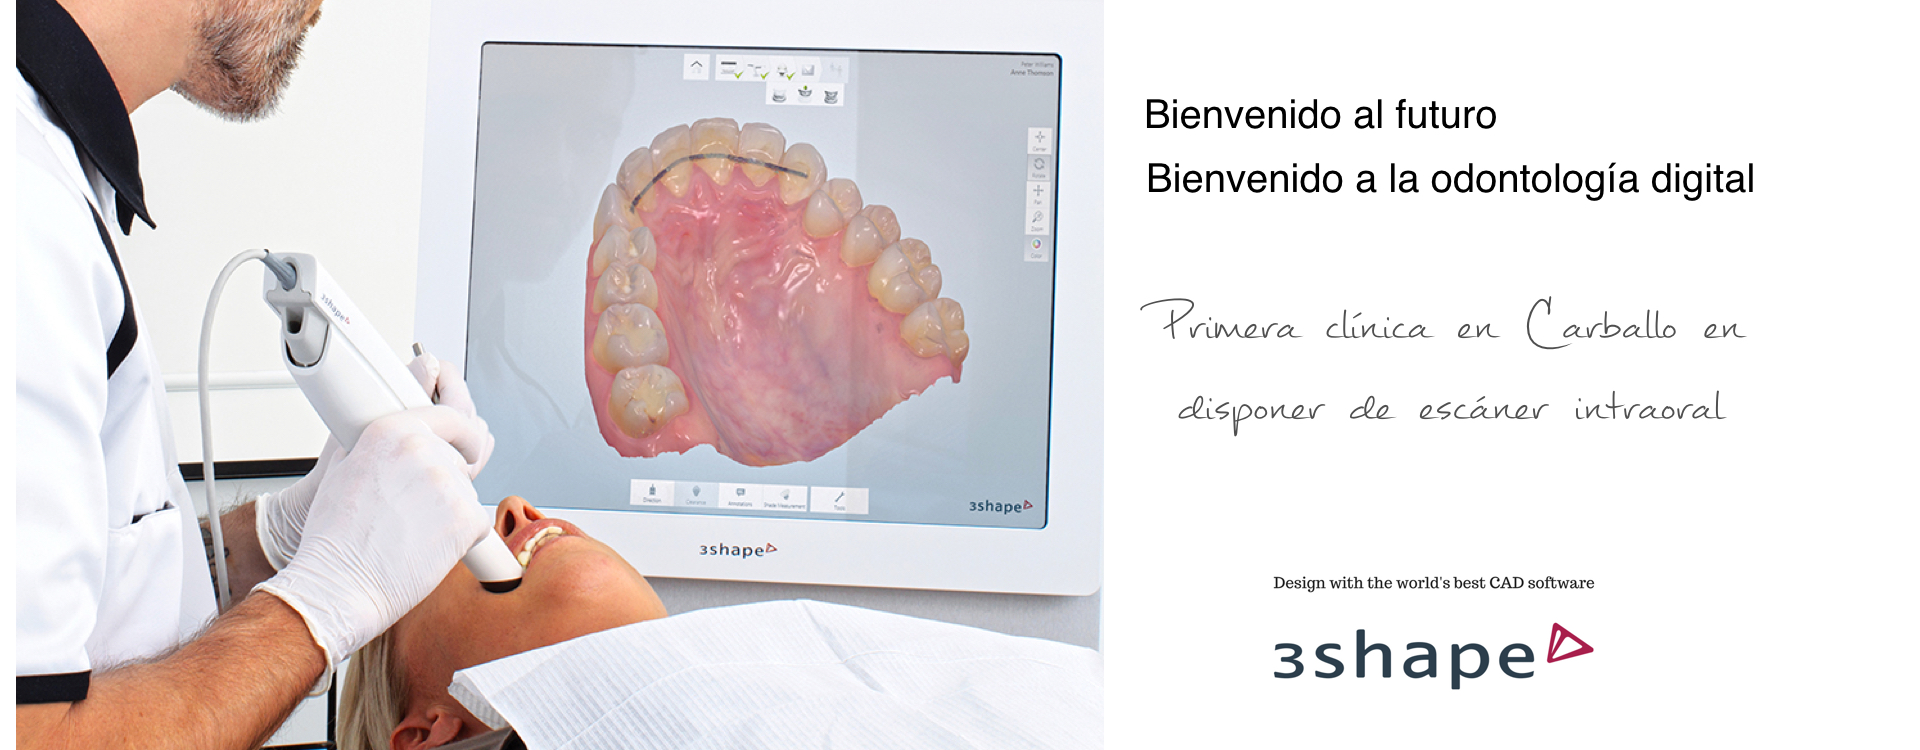 odontologia-digital-carballo